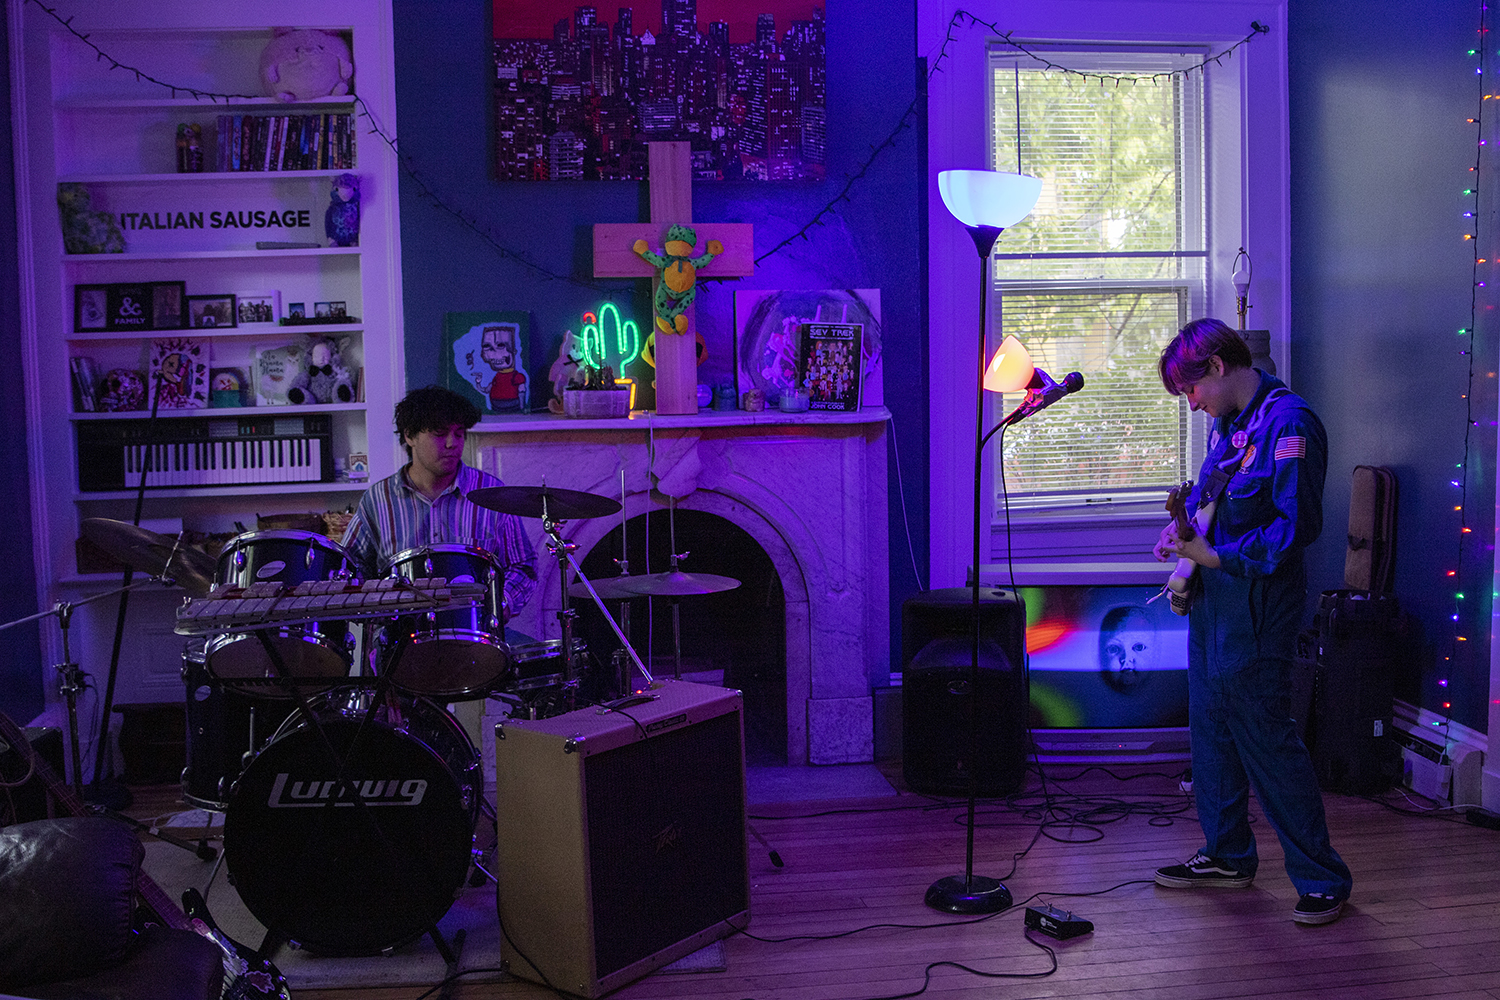 Adelina Reels practices with bandmate John Quijas in their home on Sunday, Oct. 13, 2019. Reels and Quijas are in the band Dog Dave and recently won The of Battle of the Bands at the University of Iowa.